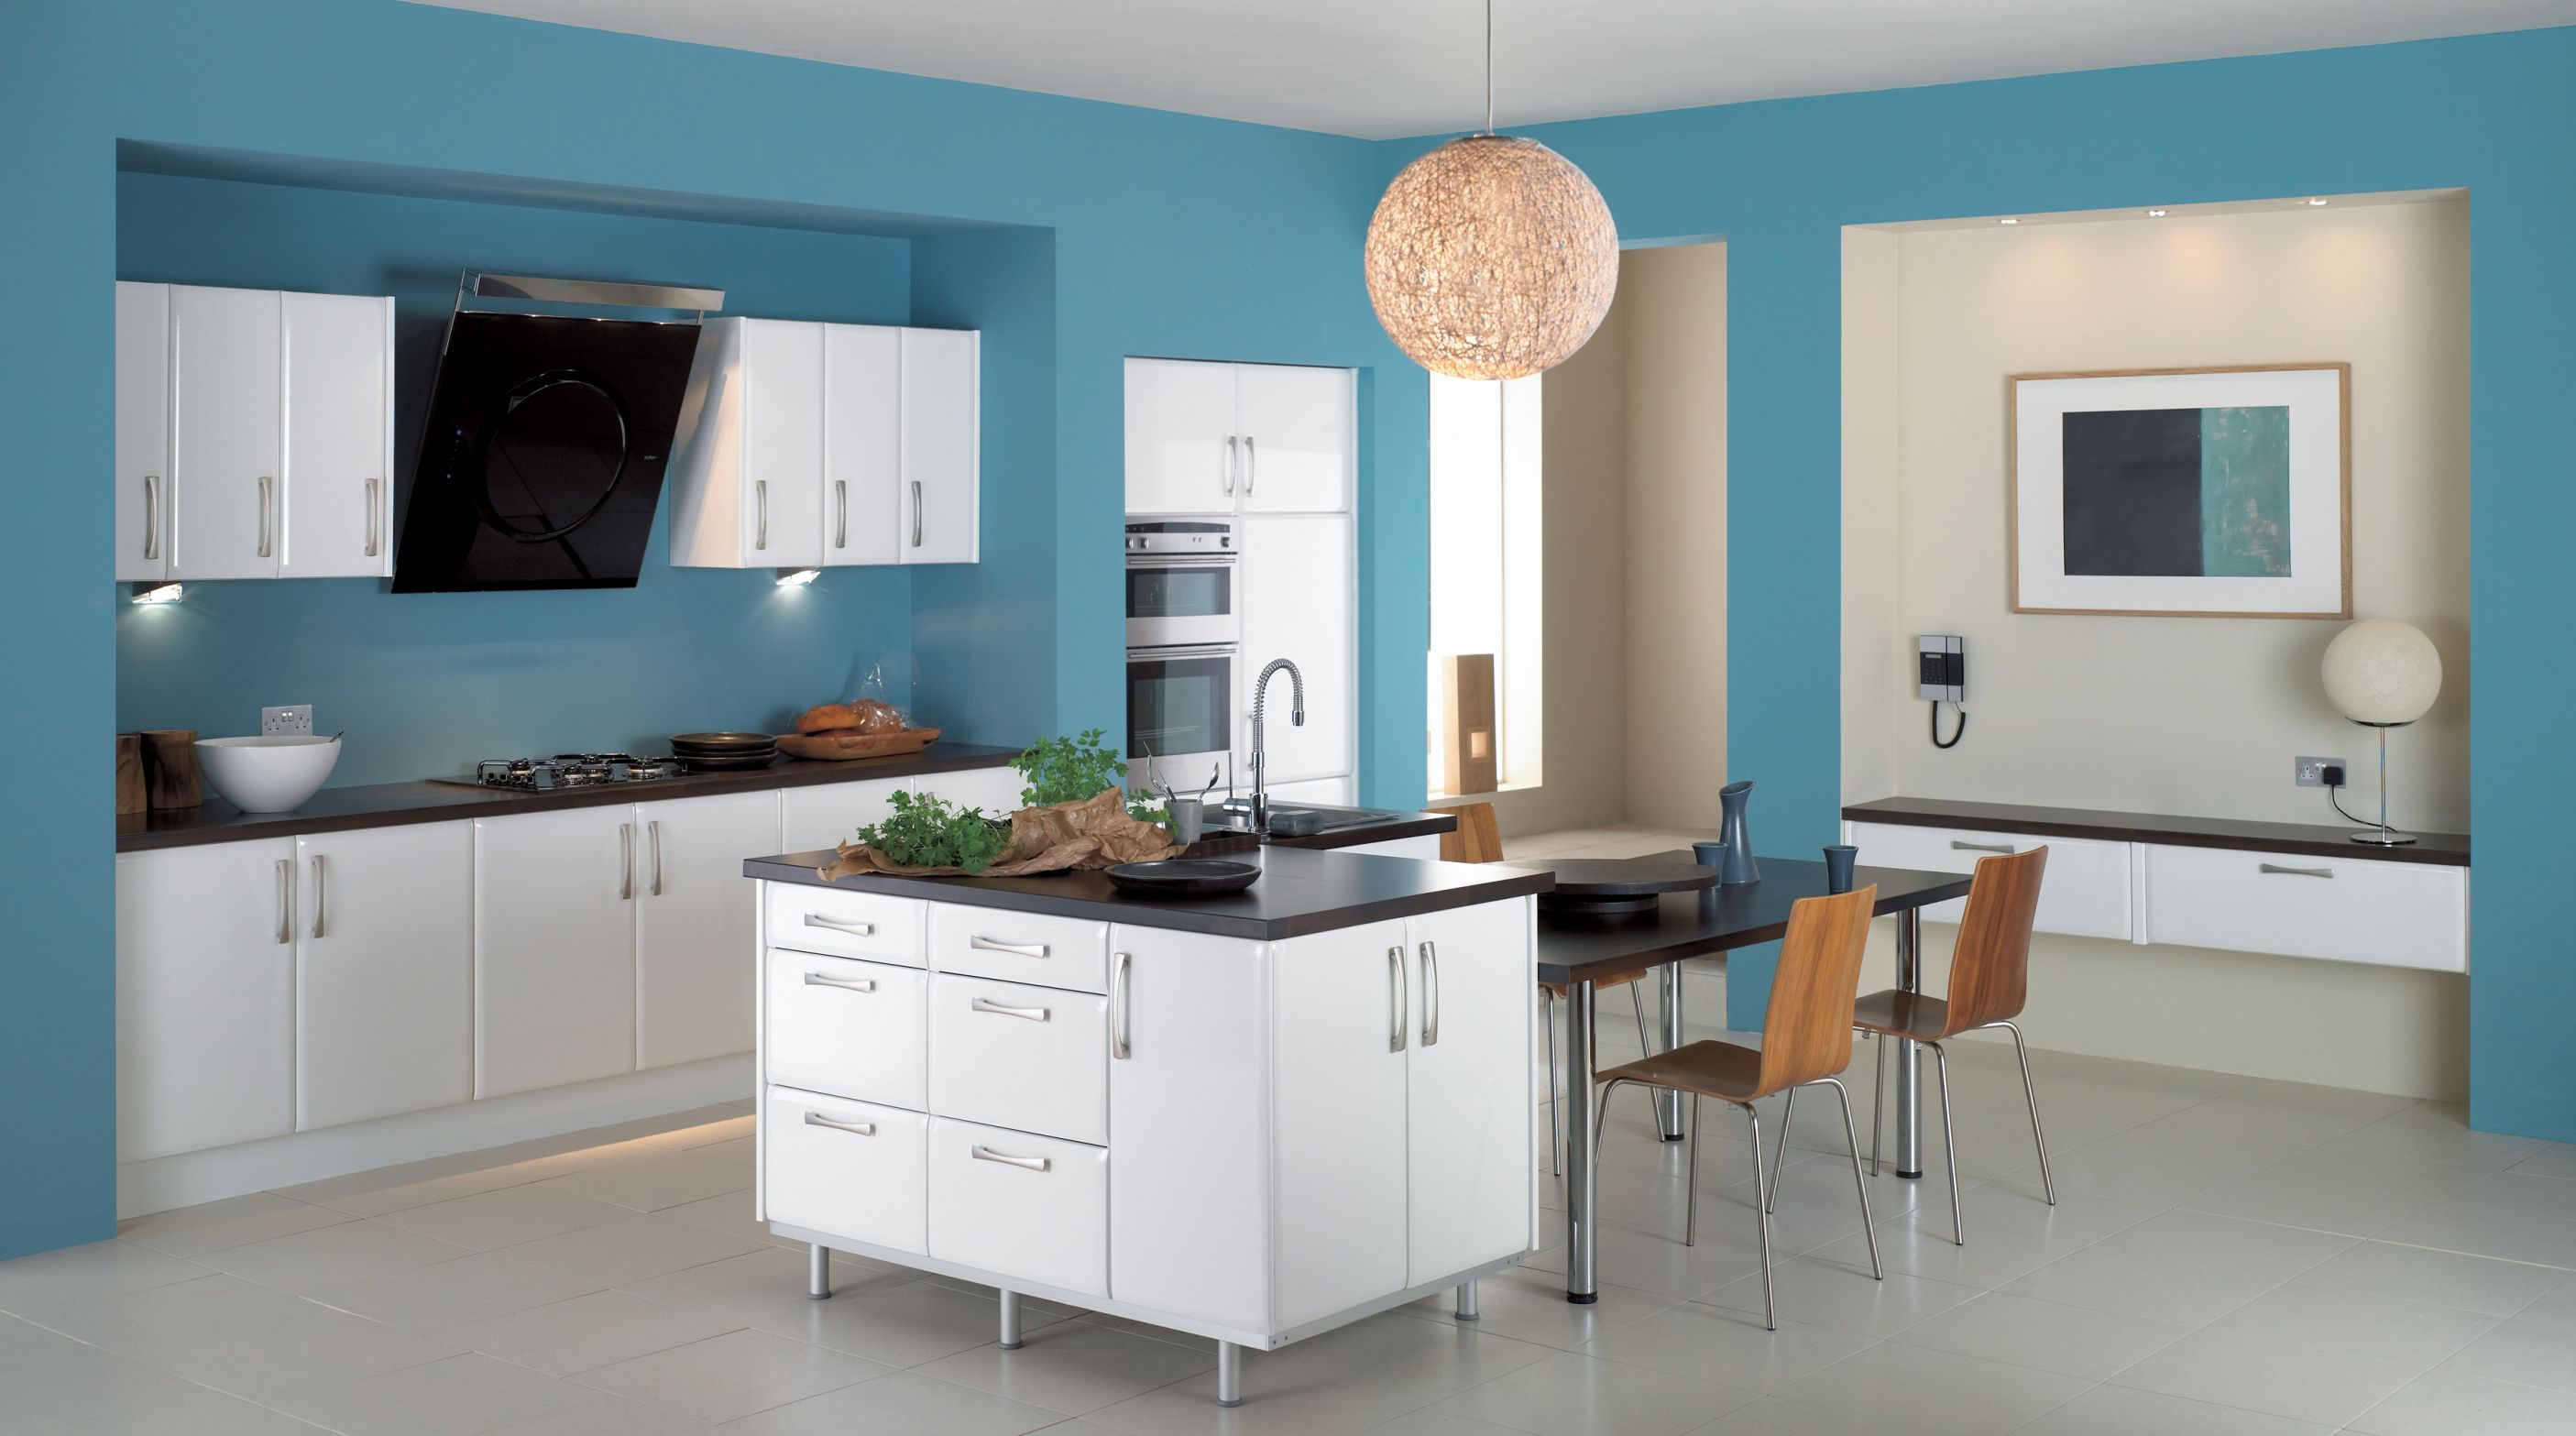 Uncategorized Interior Design Kitchen Colors cool colors white kitchen modern with blue color design tangine kitchen